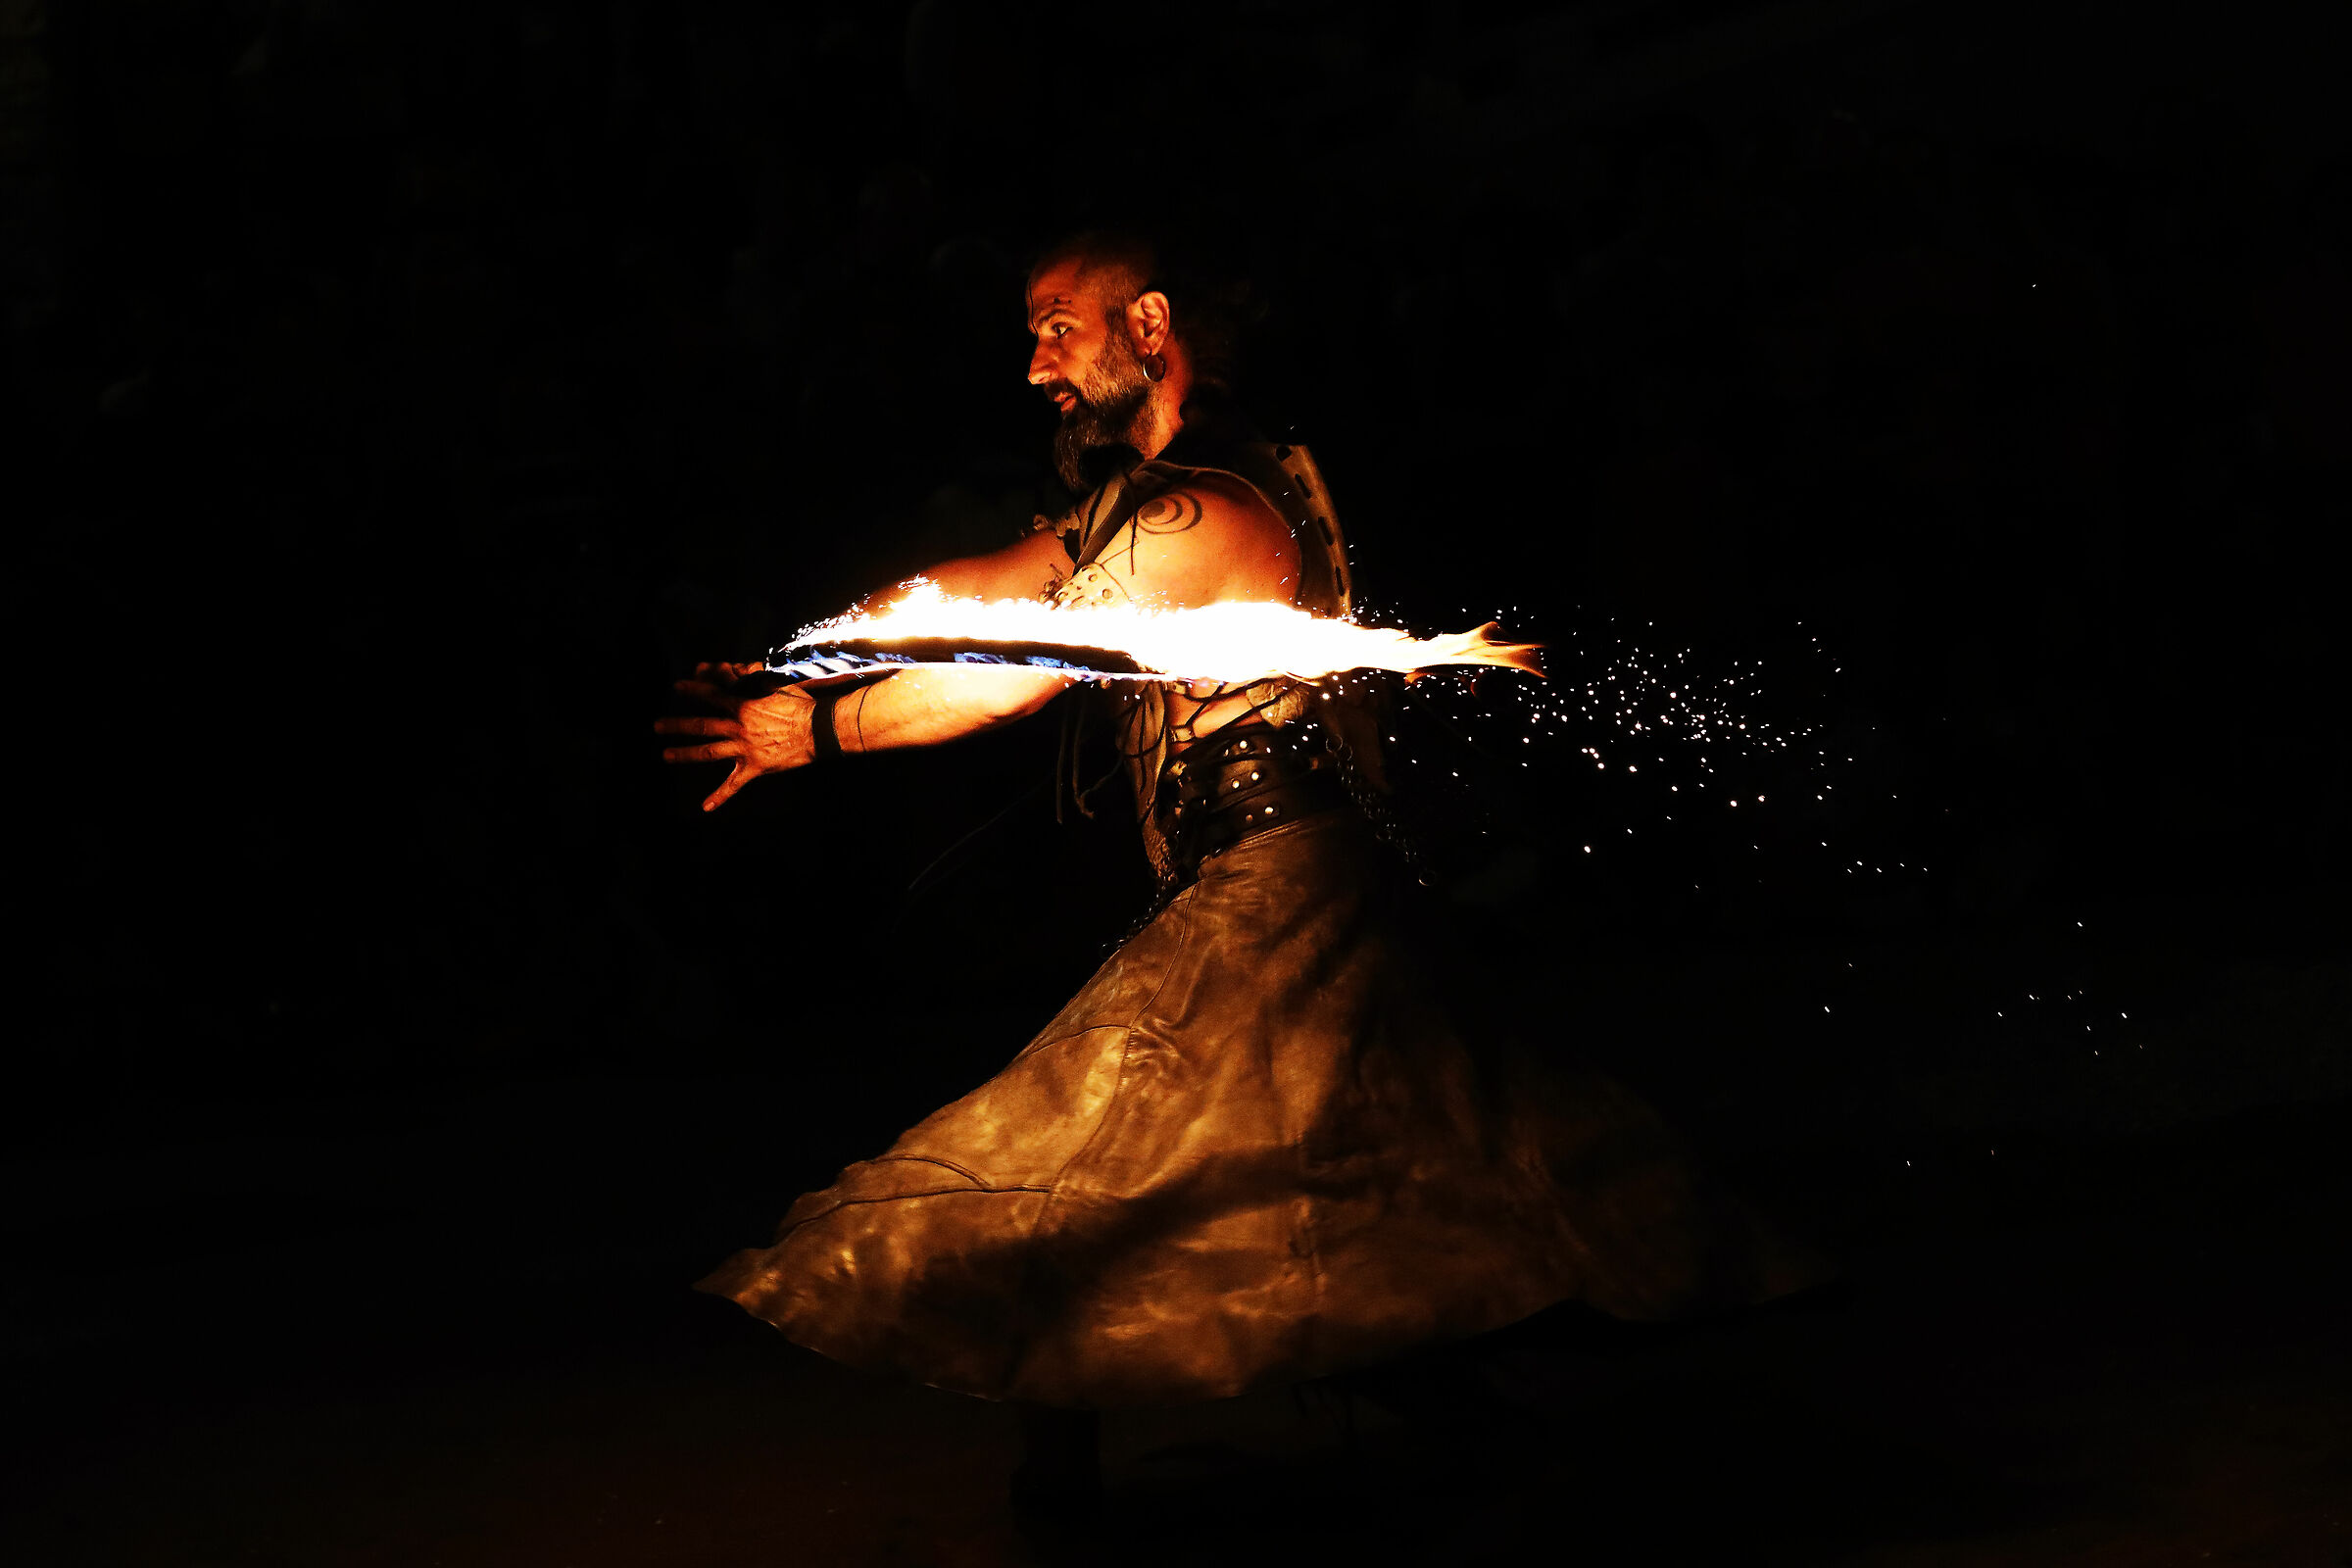 The Fire Show...